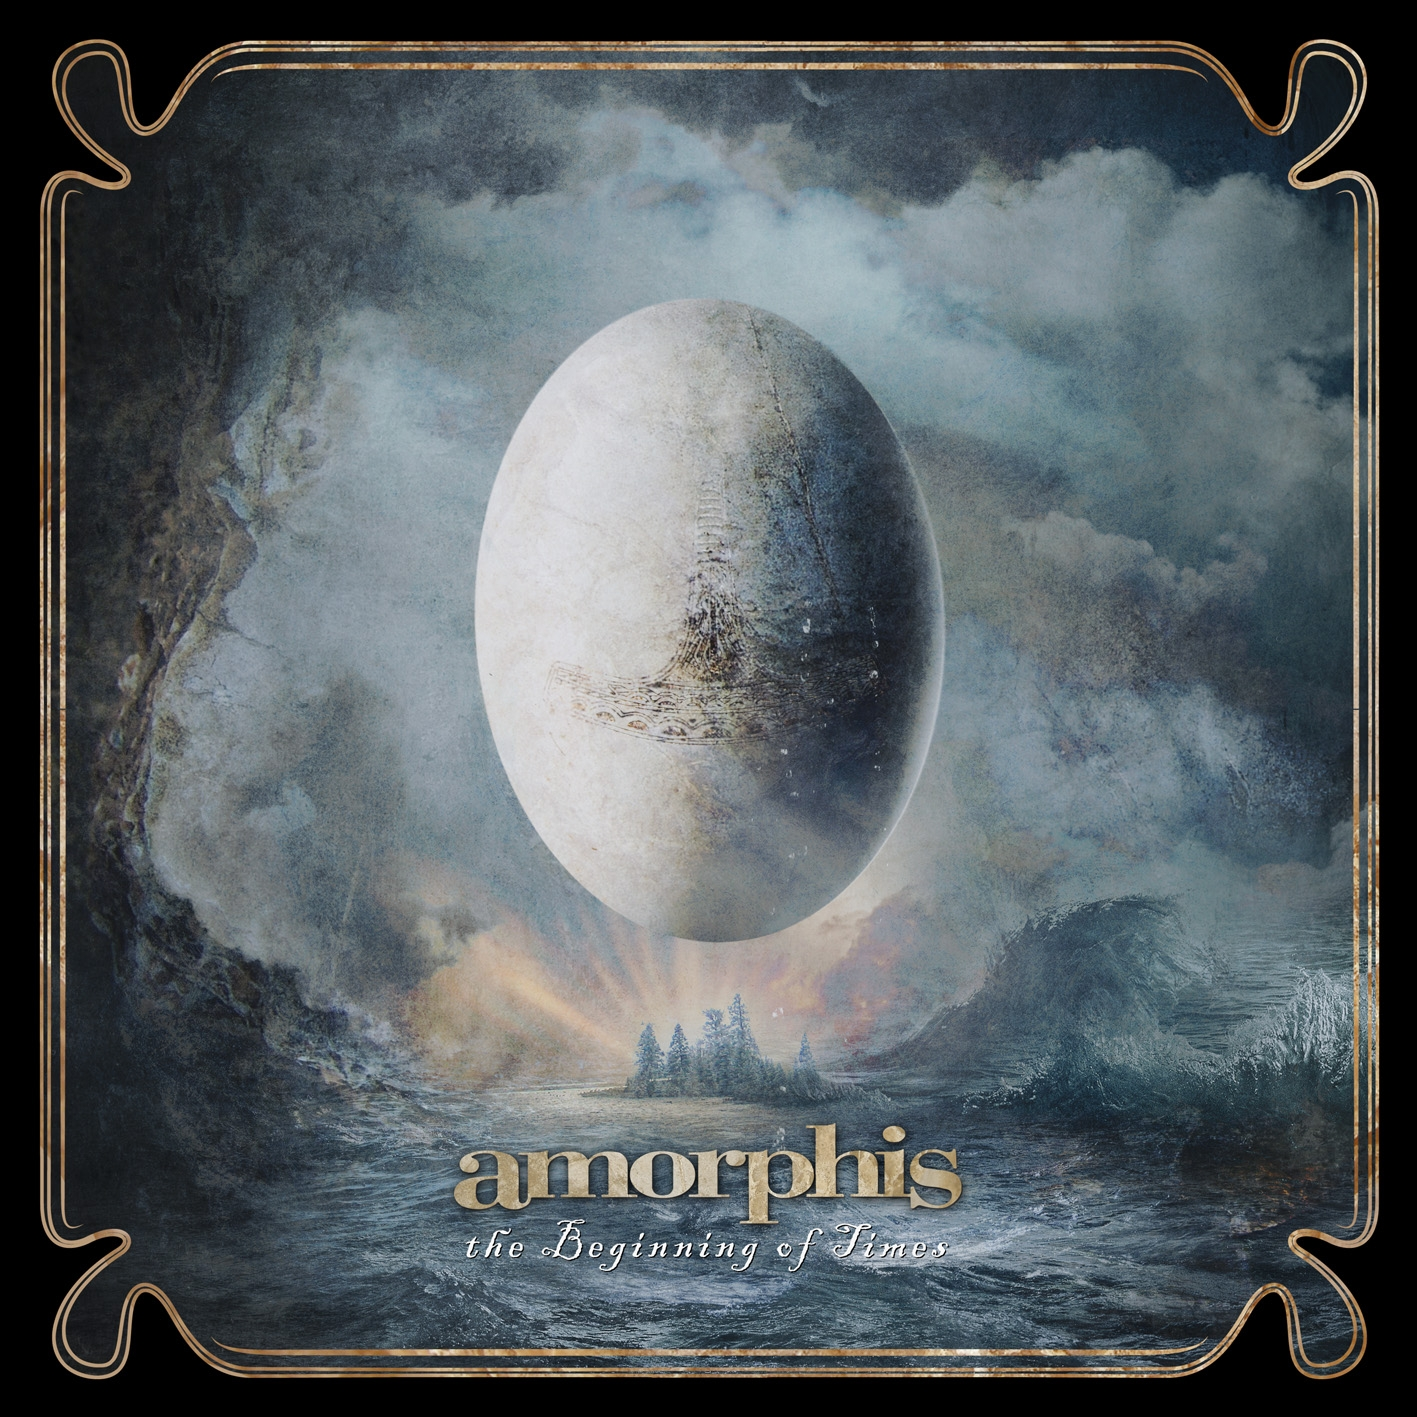 Amorphis – The Beginning of Times Review